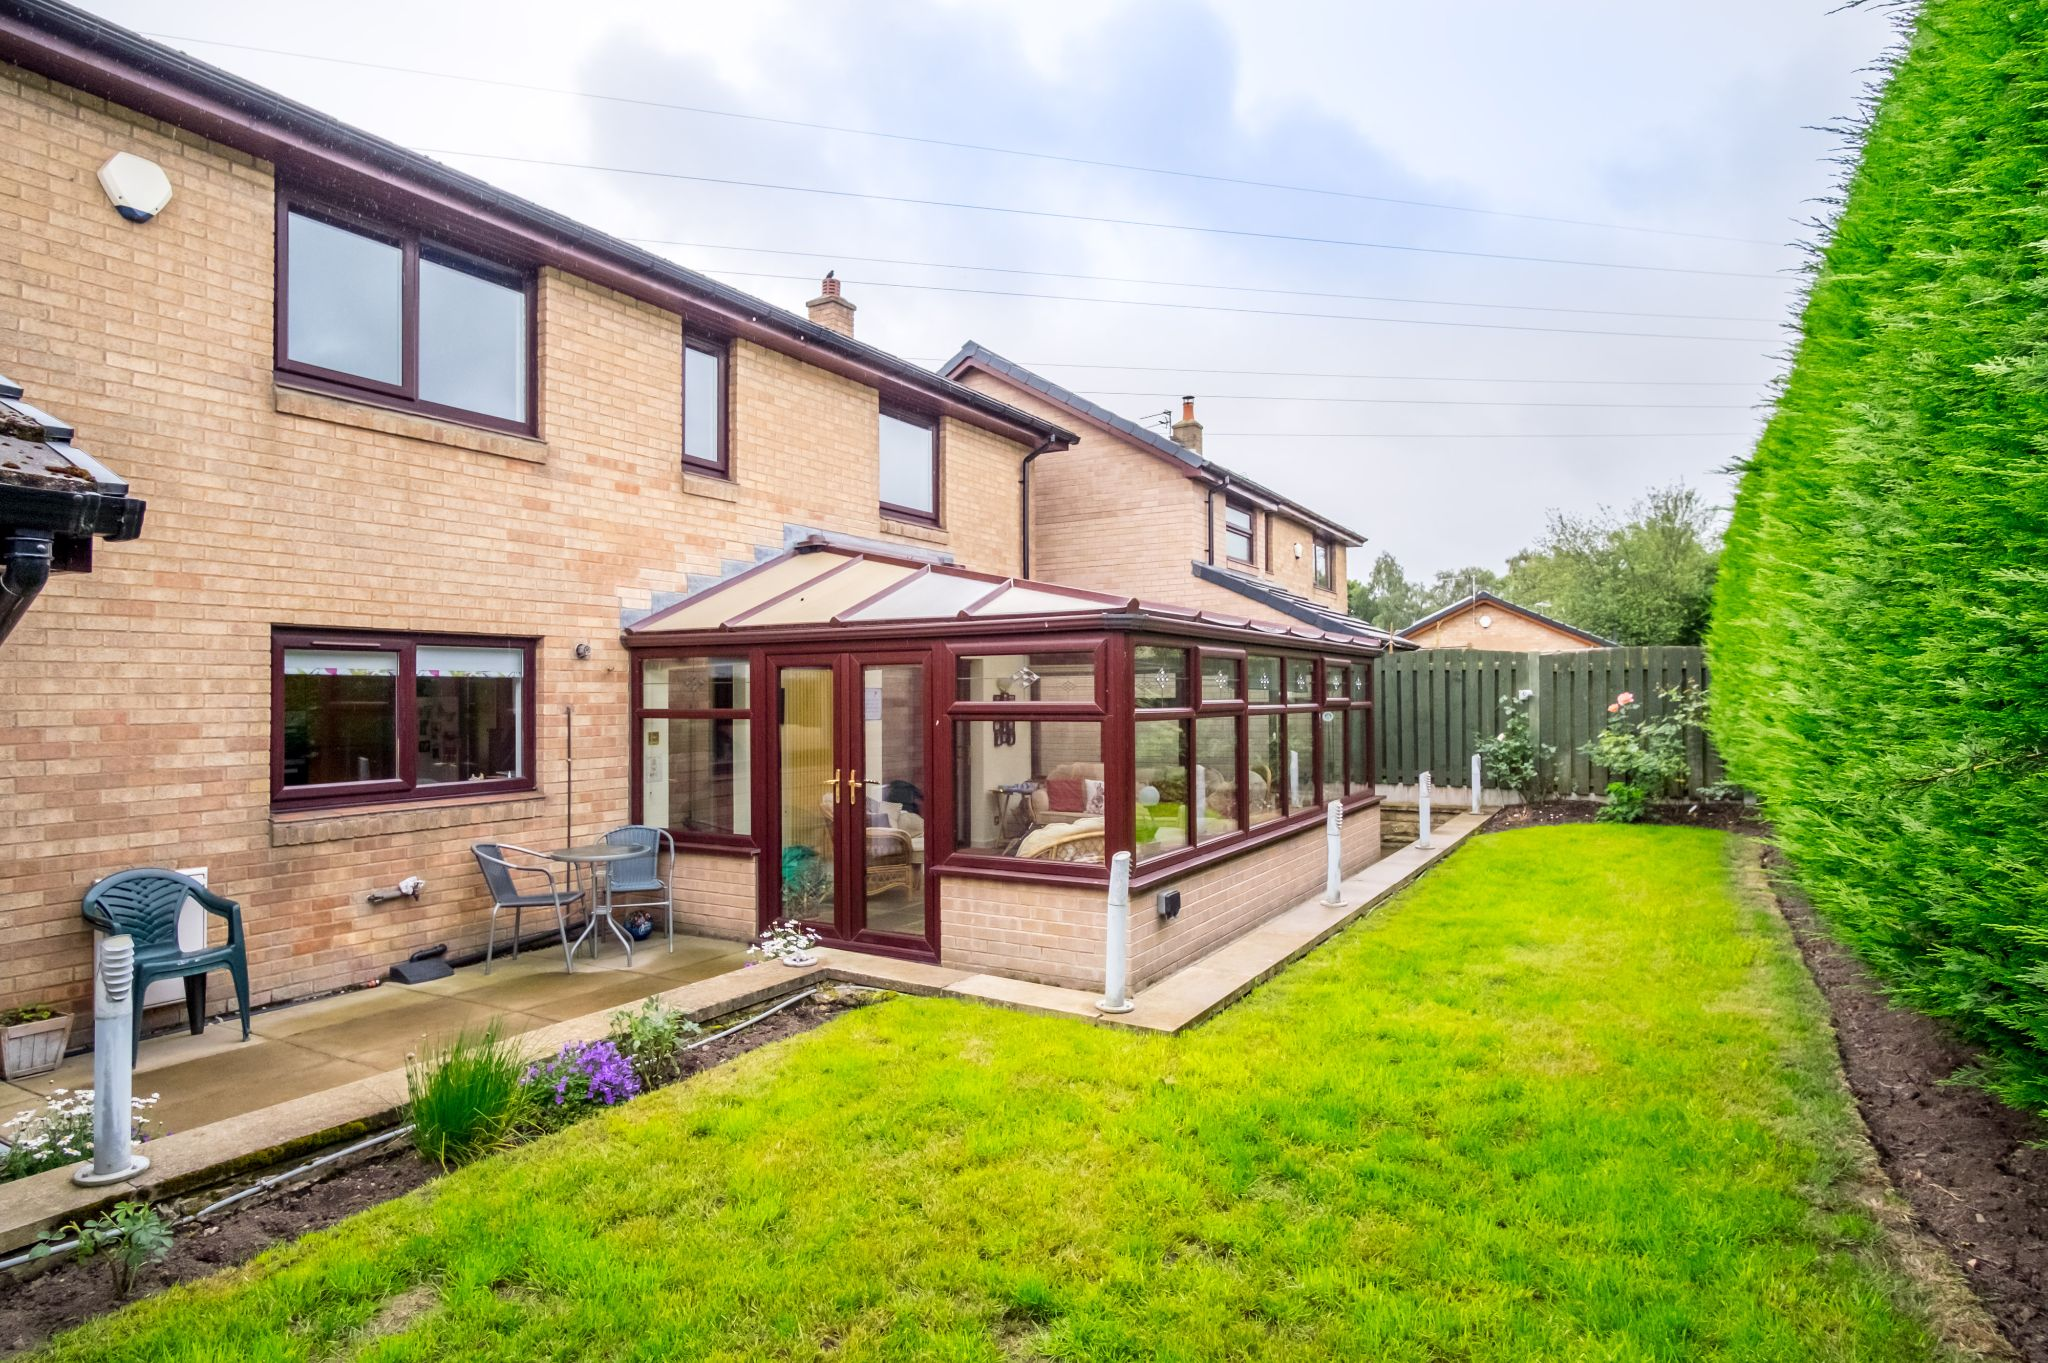 4 bedroom detached house For Sale in Brighouse - Rear garden